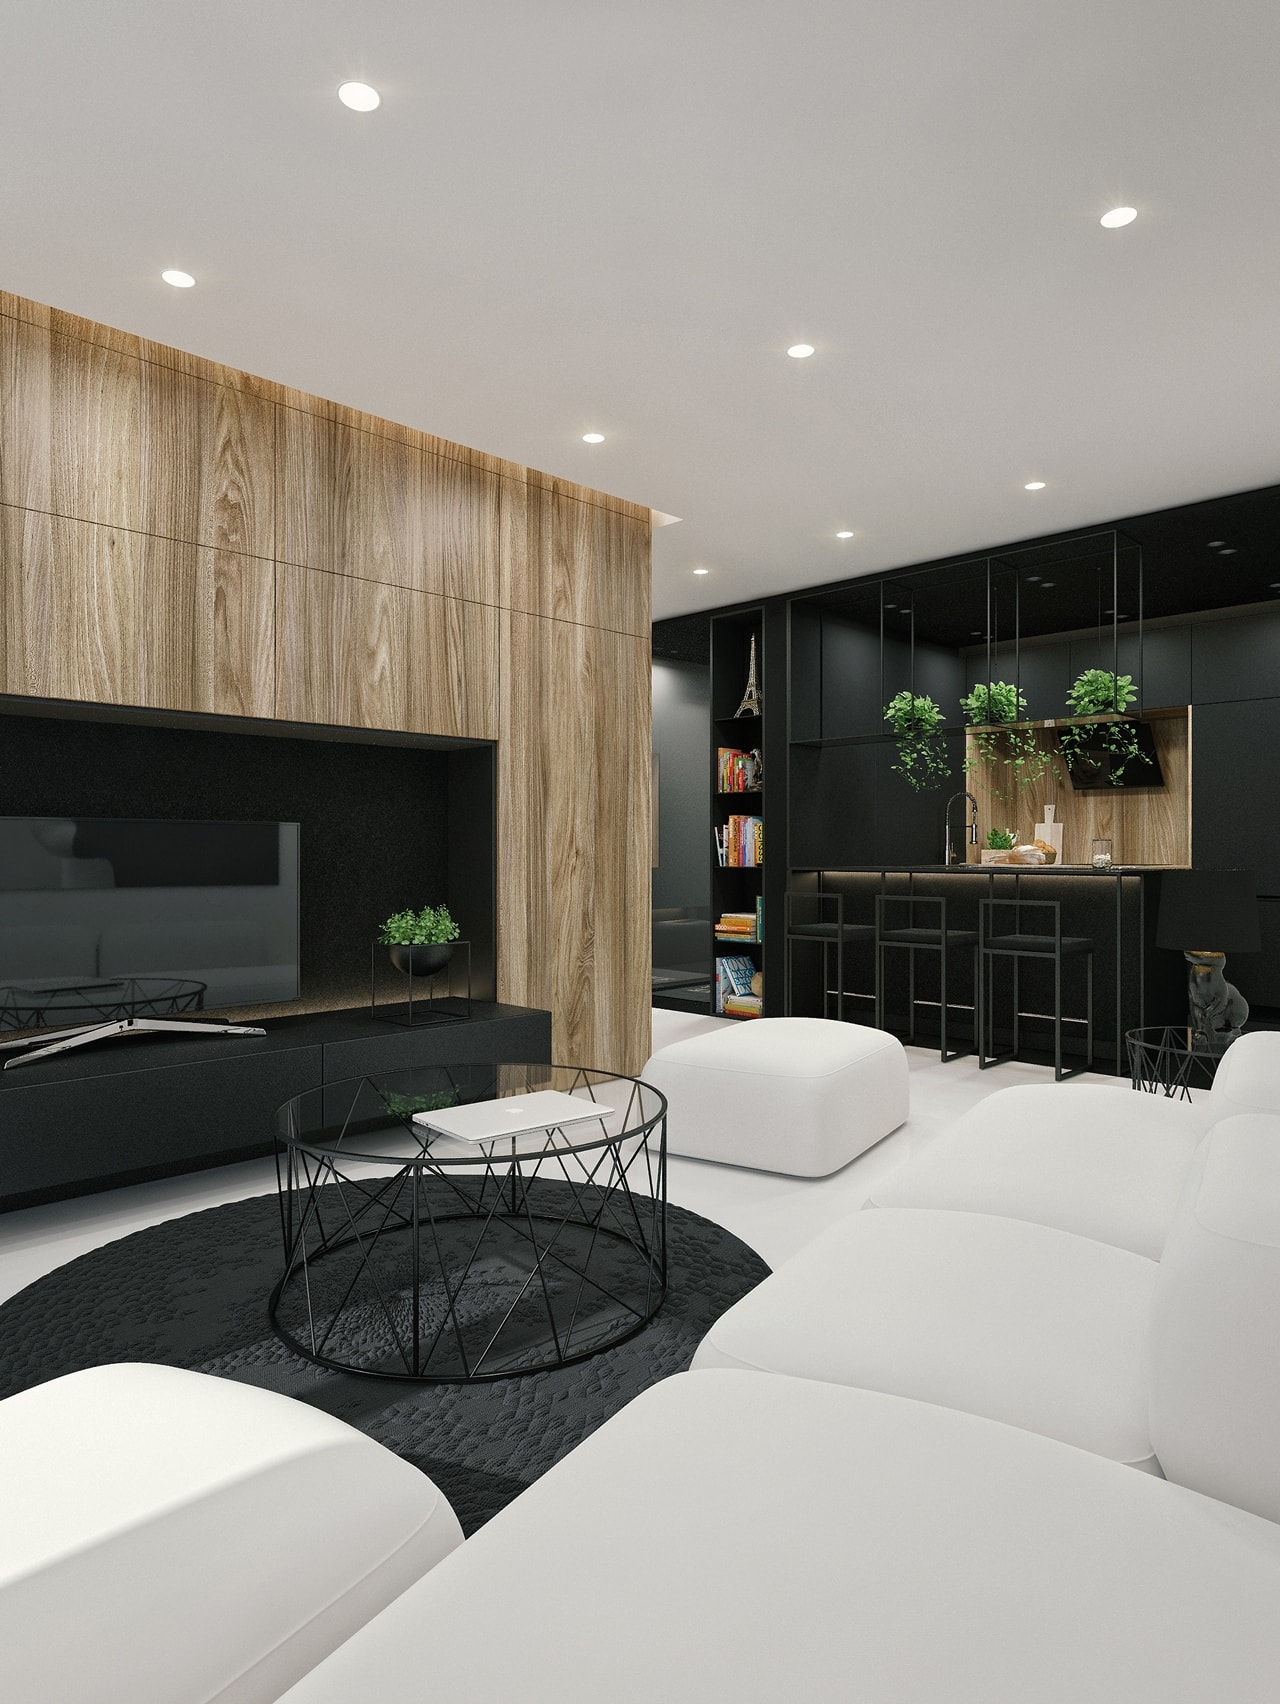 When you combine soft gray with equally soft white, cream and tan in the bedroom, you create a calm and yet sophisticated style. Black And White Interior Design Ideas: Modern Apartment by